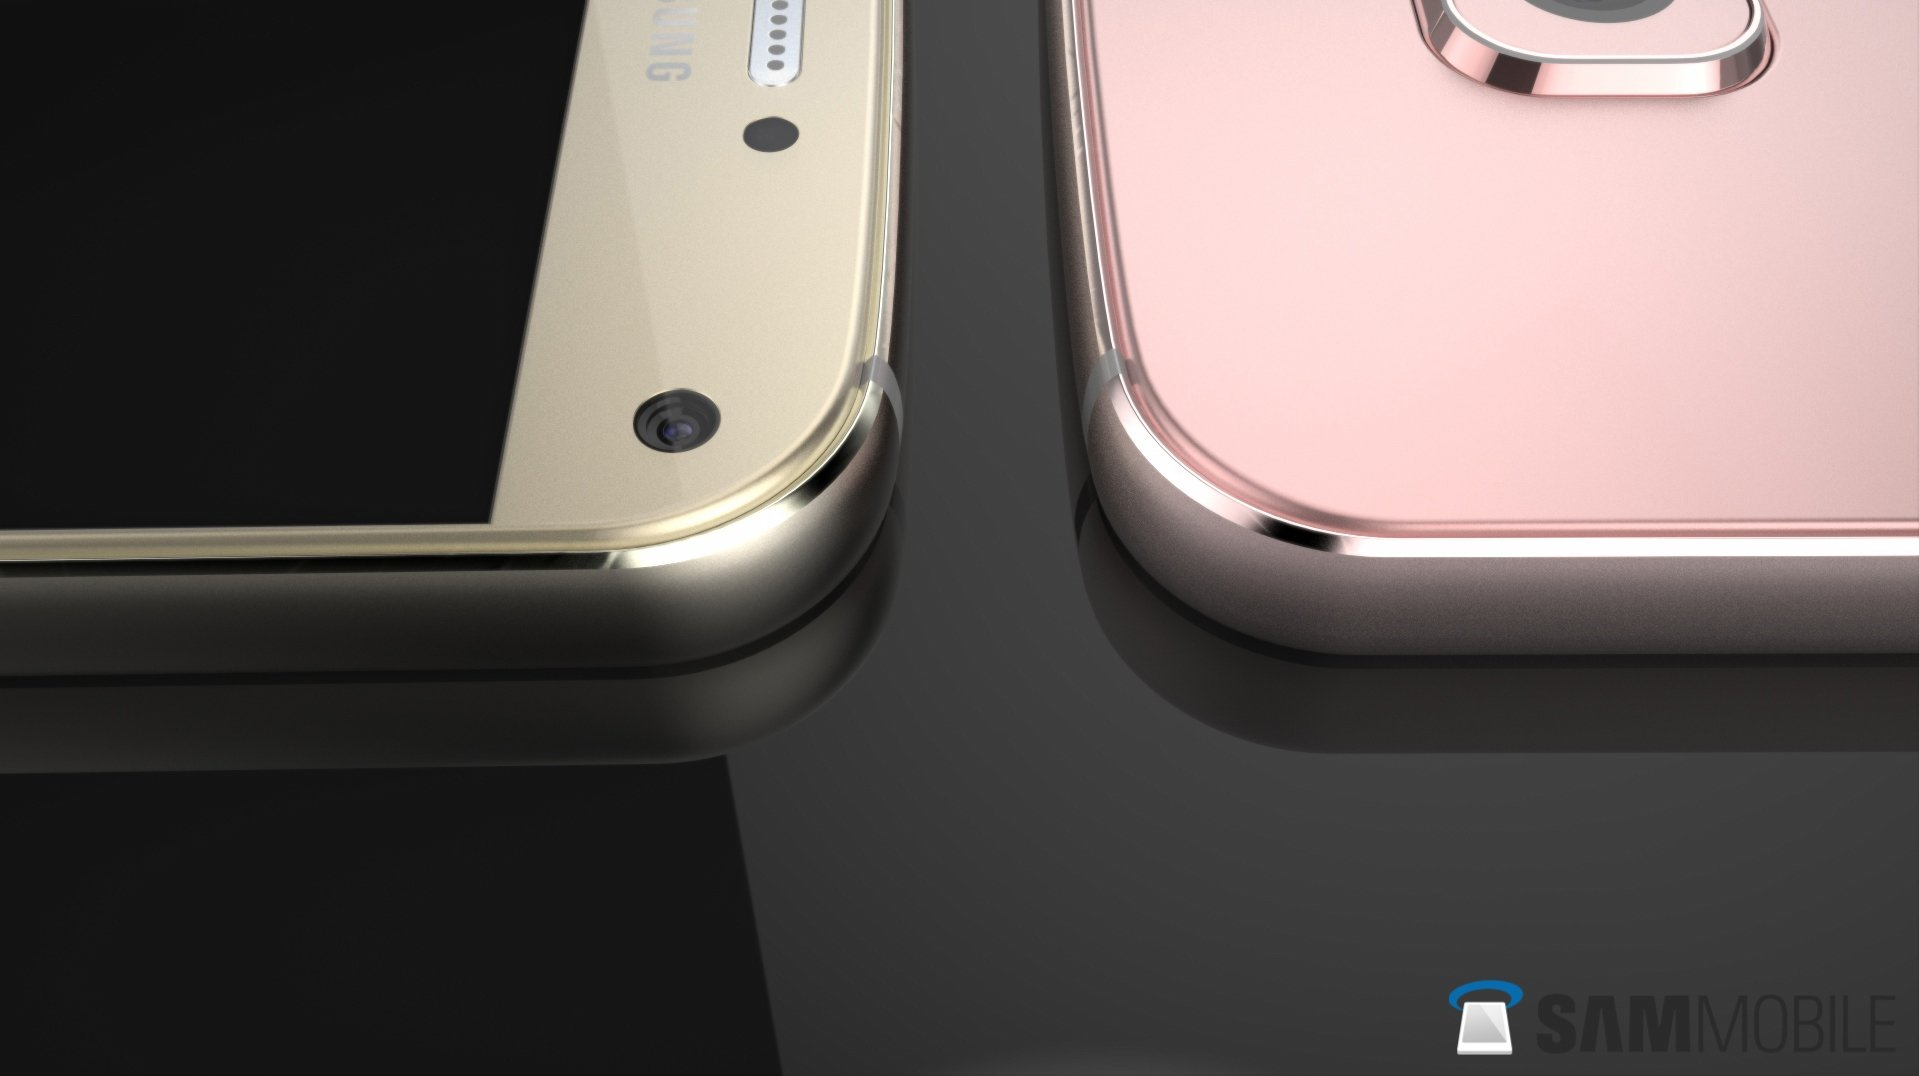 what do you think about this samsung galaxy s7 concept